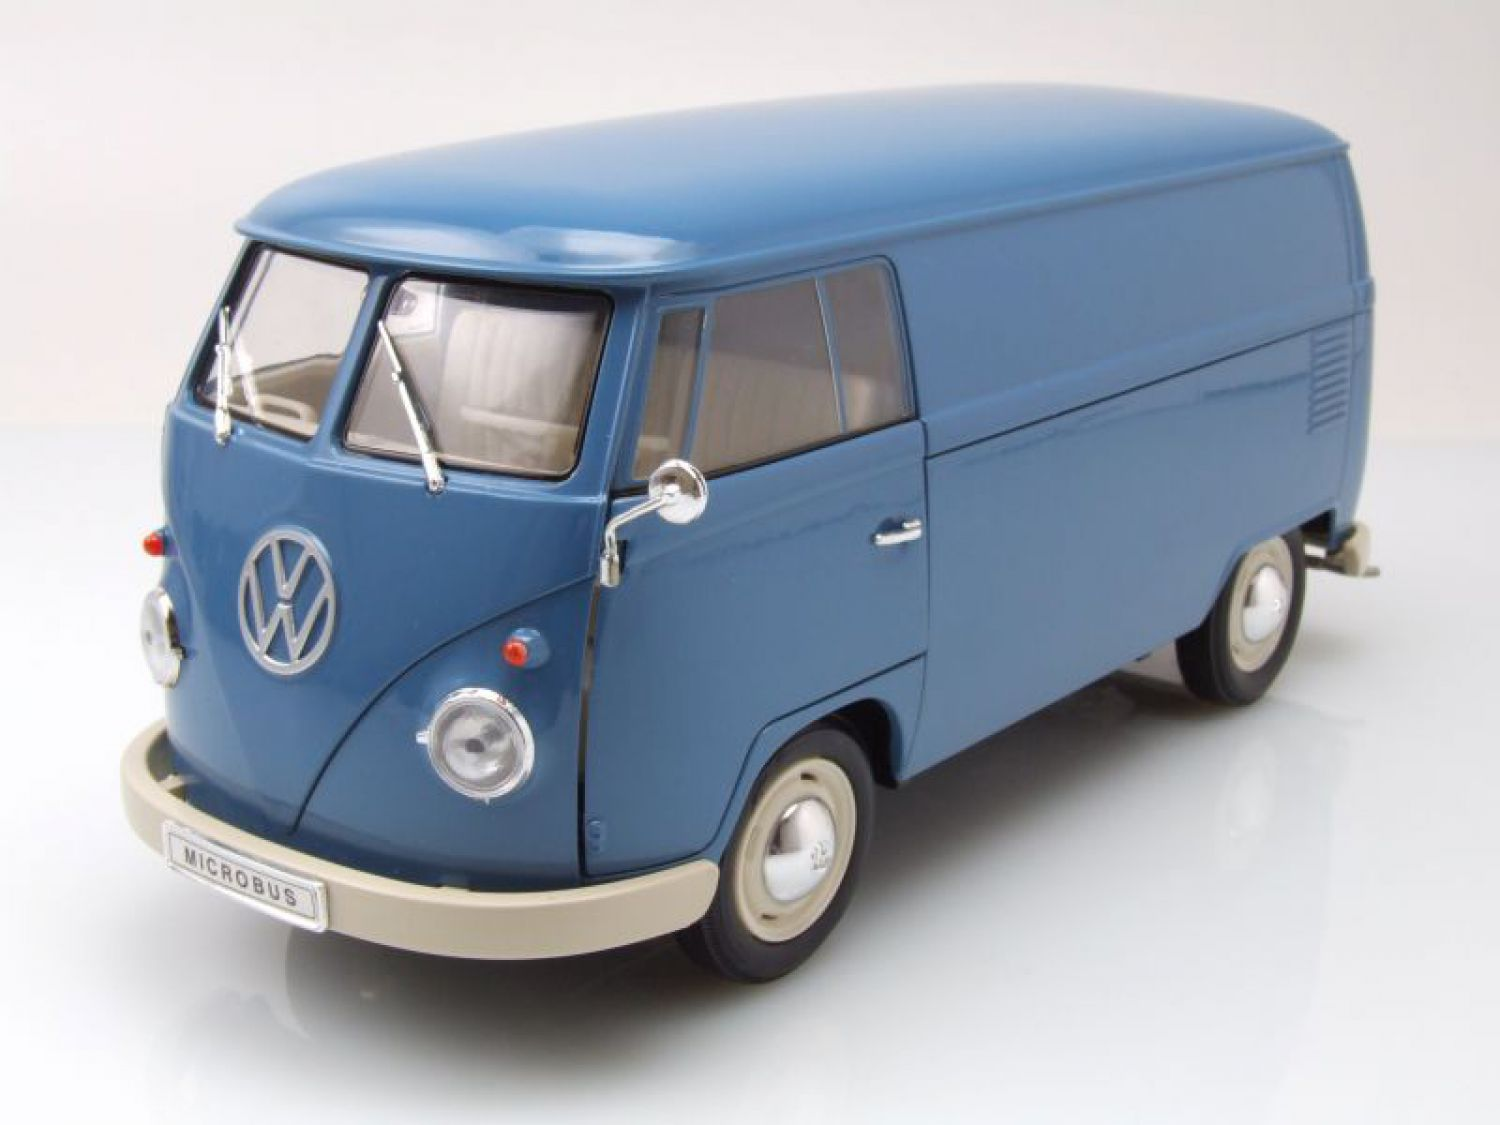 vw t1 bus kasten 1963 blau modellauto 1 18 welly ebay. Black Bedroom Furniture Sets. Home Design Ideas